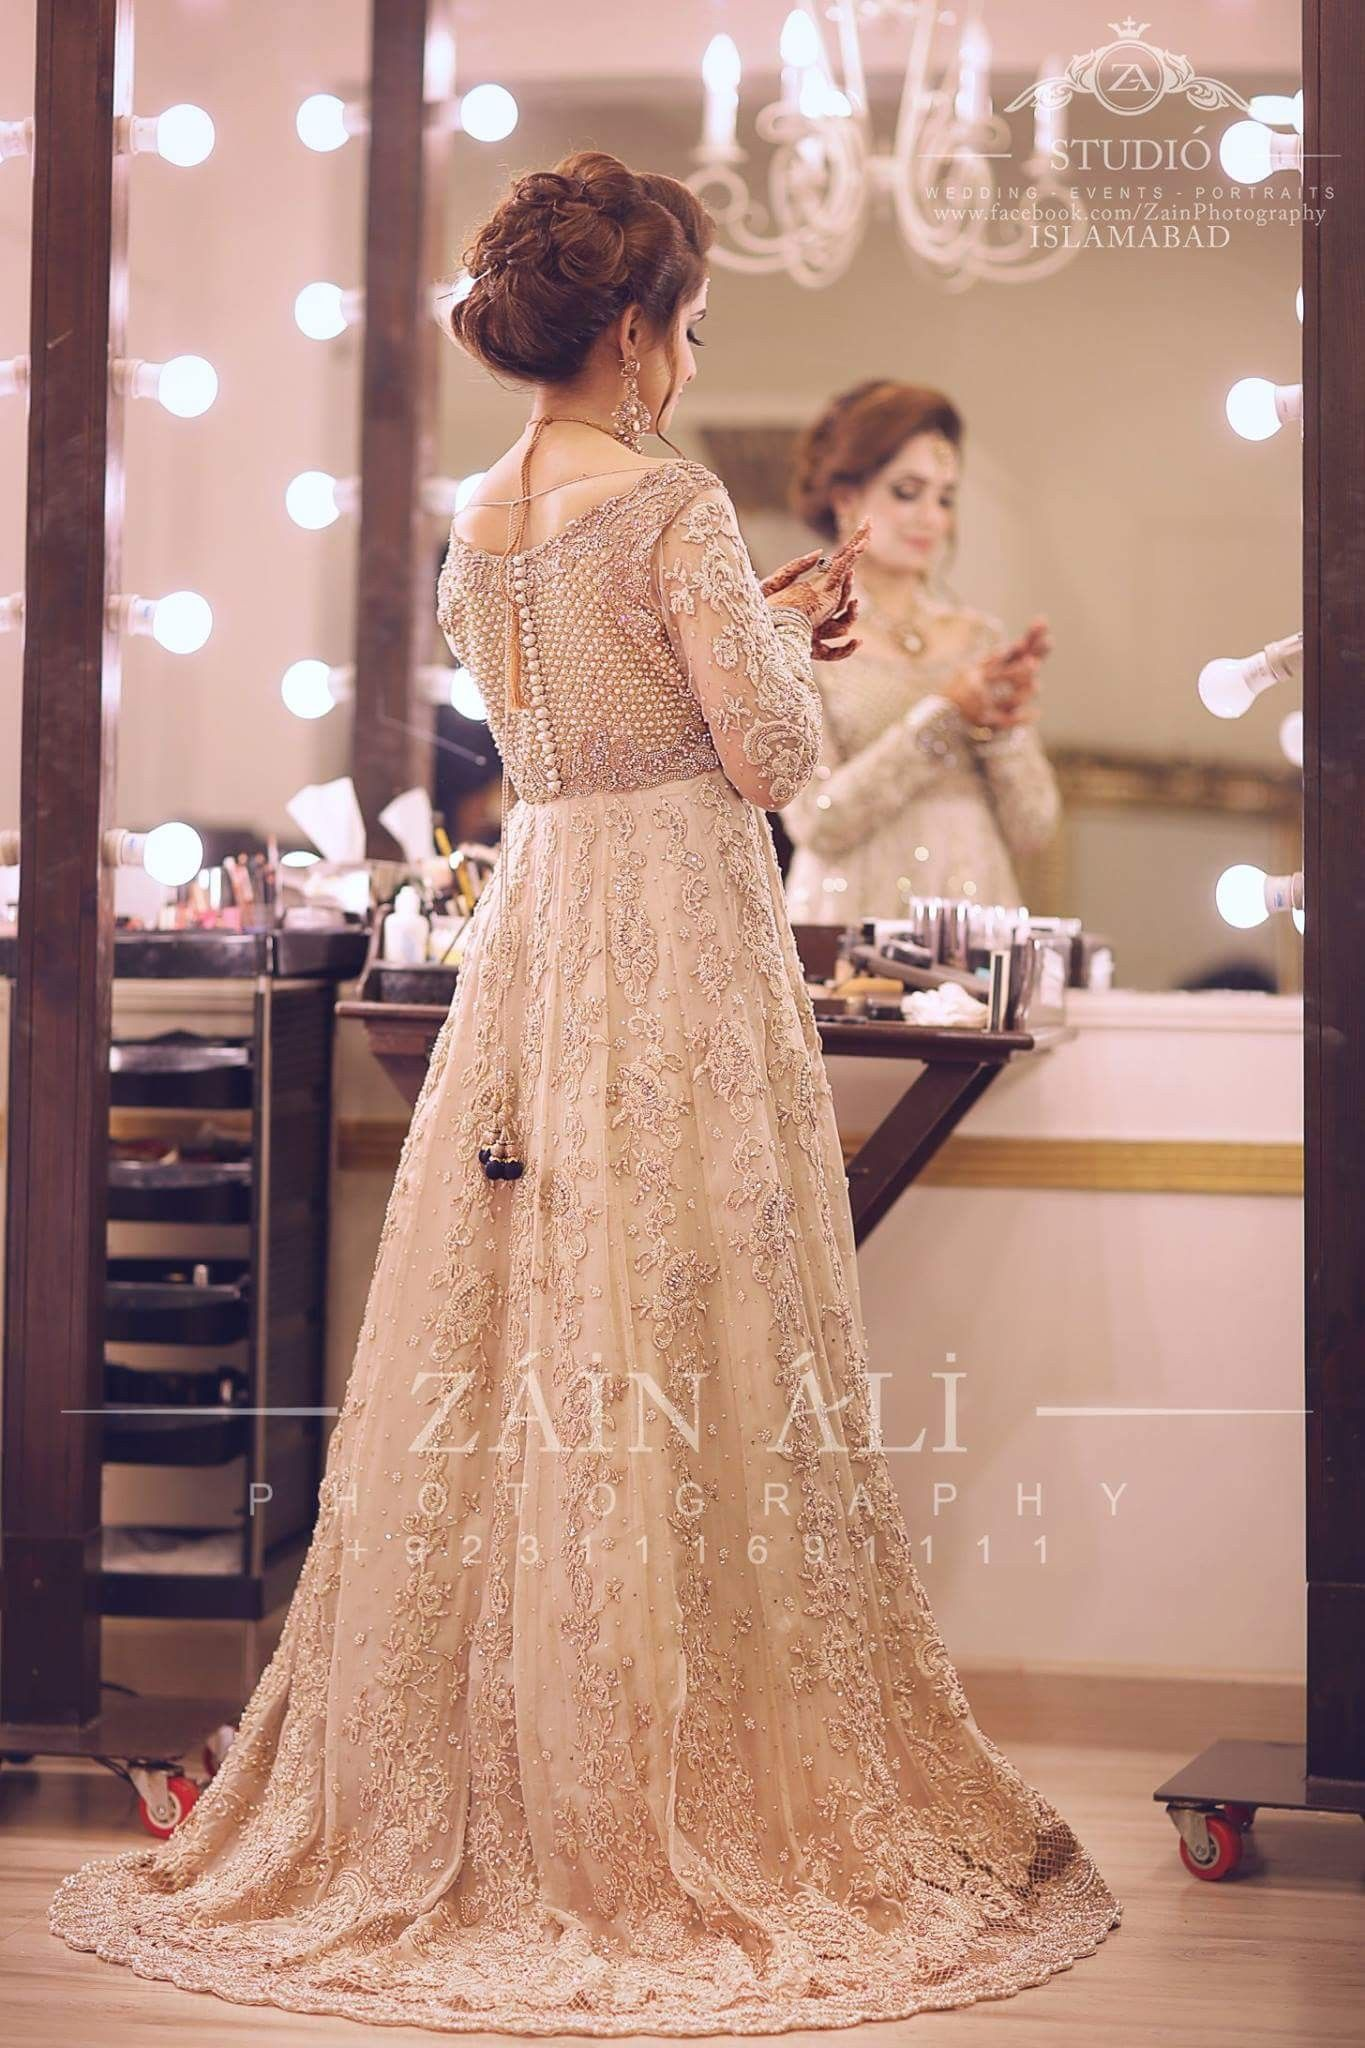 Pin By Safeer Ahmad On Wedding Ring Pakistani Bridal Dresses Maxi Dress Wedding Beautiful Dresses,Wedding Attractive Beautiful Night Dresses